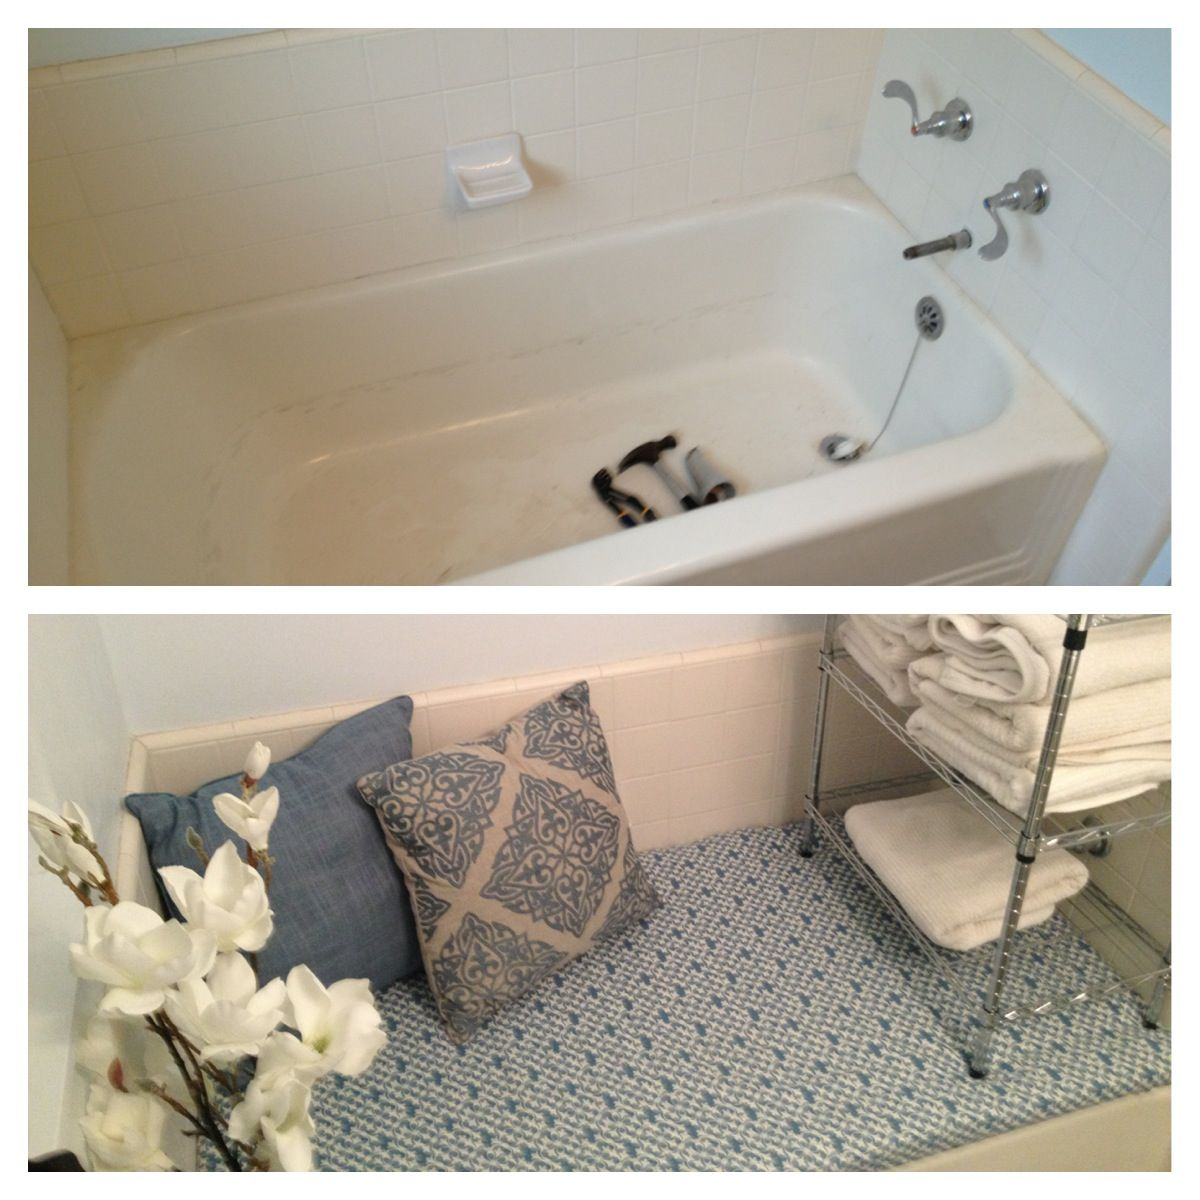 Losing Space Due To An Unused Bath Tub. Instead Of Losing Space, We Created